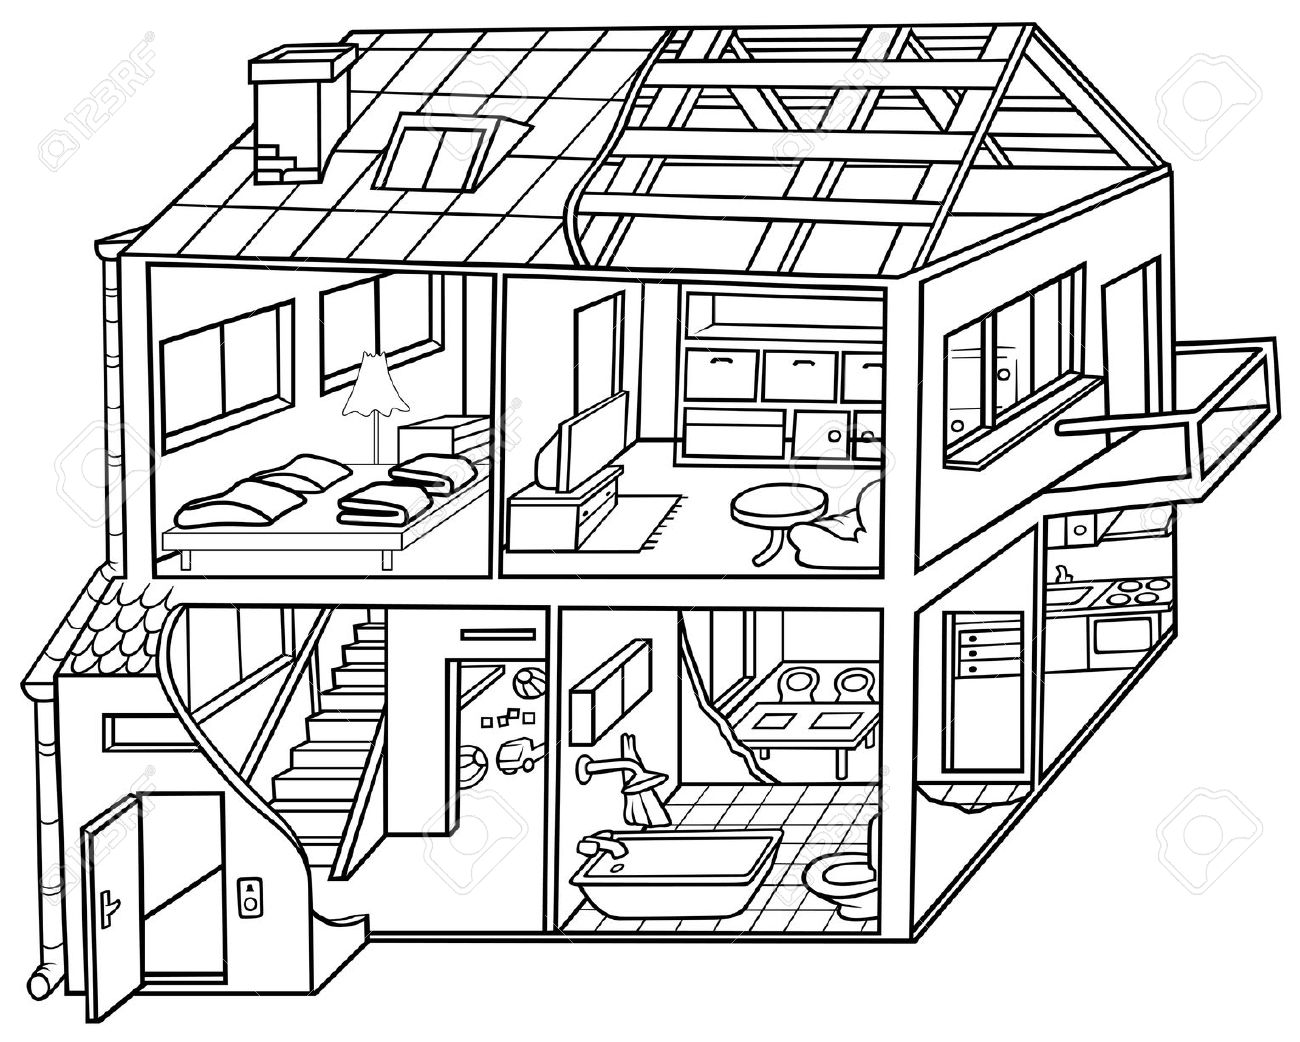 Inside A House Drawing at GetDrawings.com | Free for personal use ...